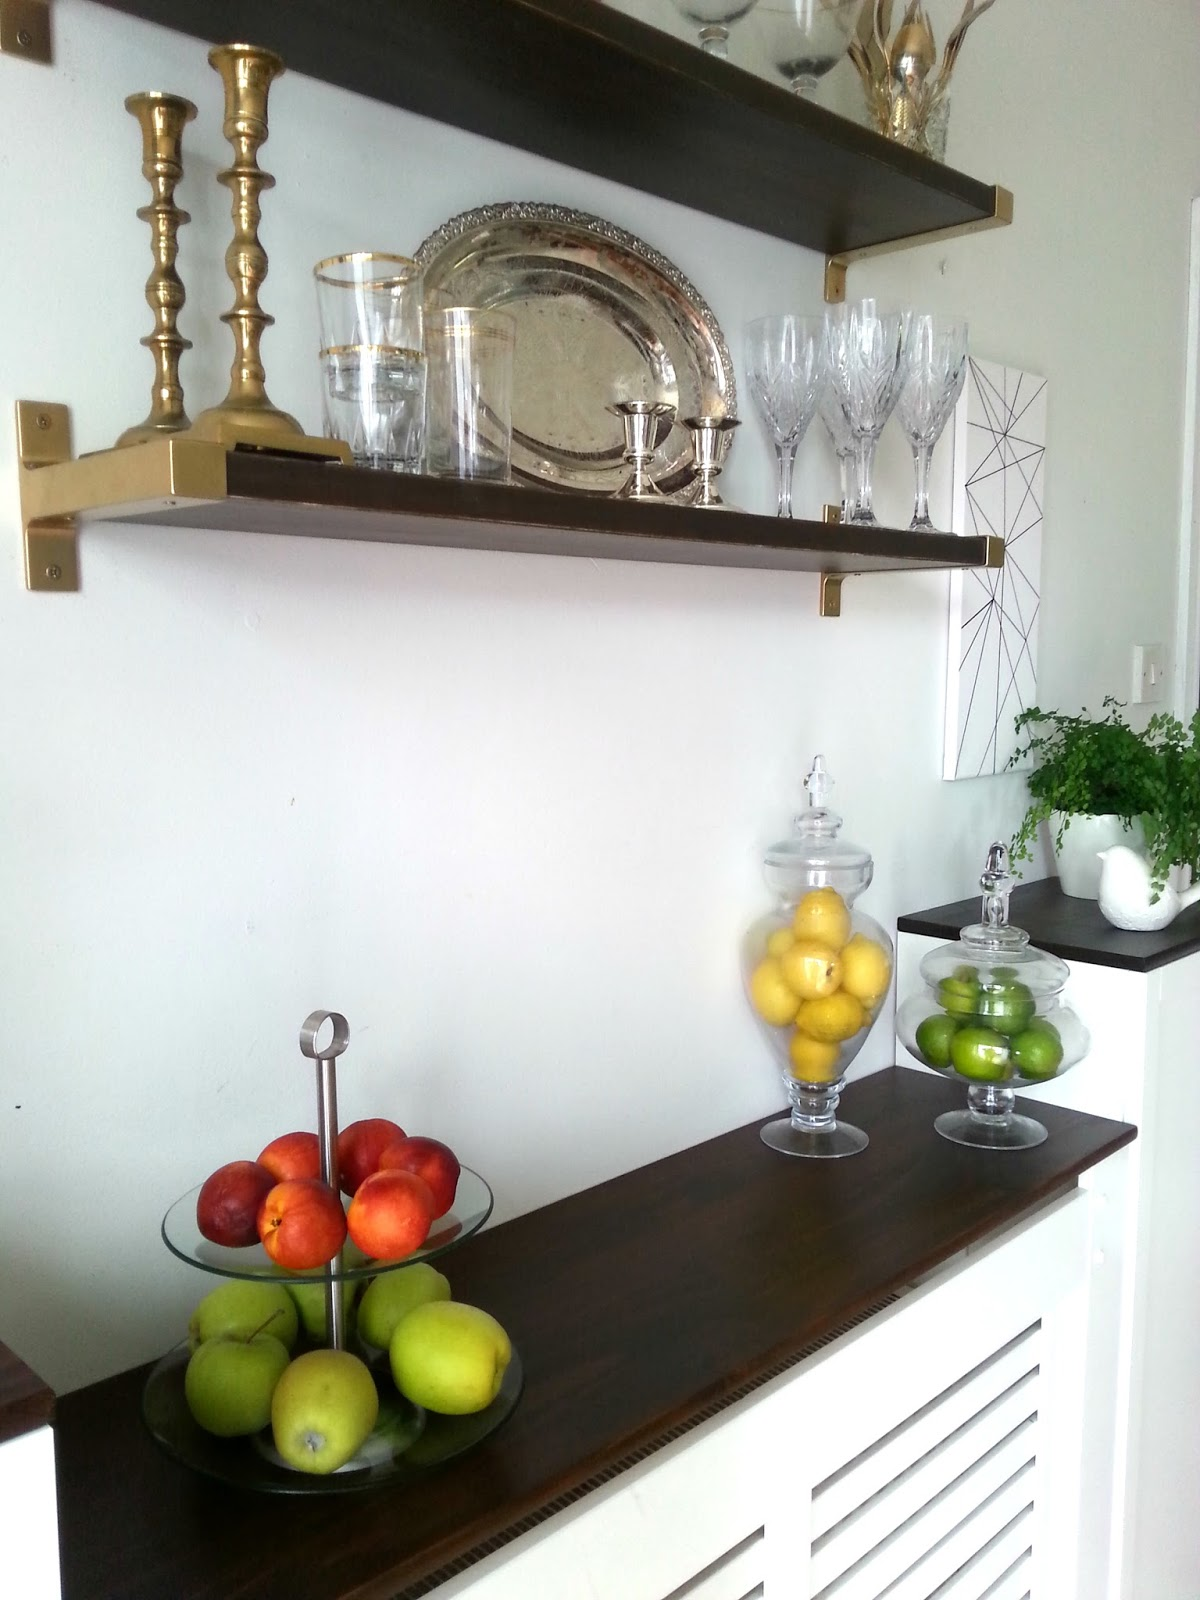 Ikeahack for builtin dining room storagewhen you have to work